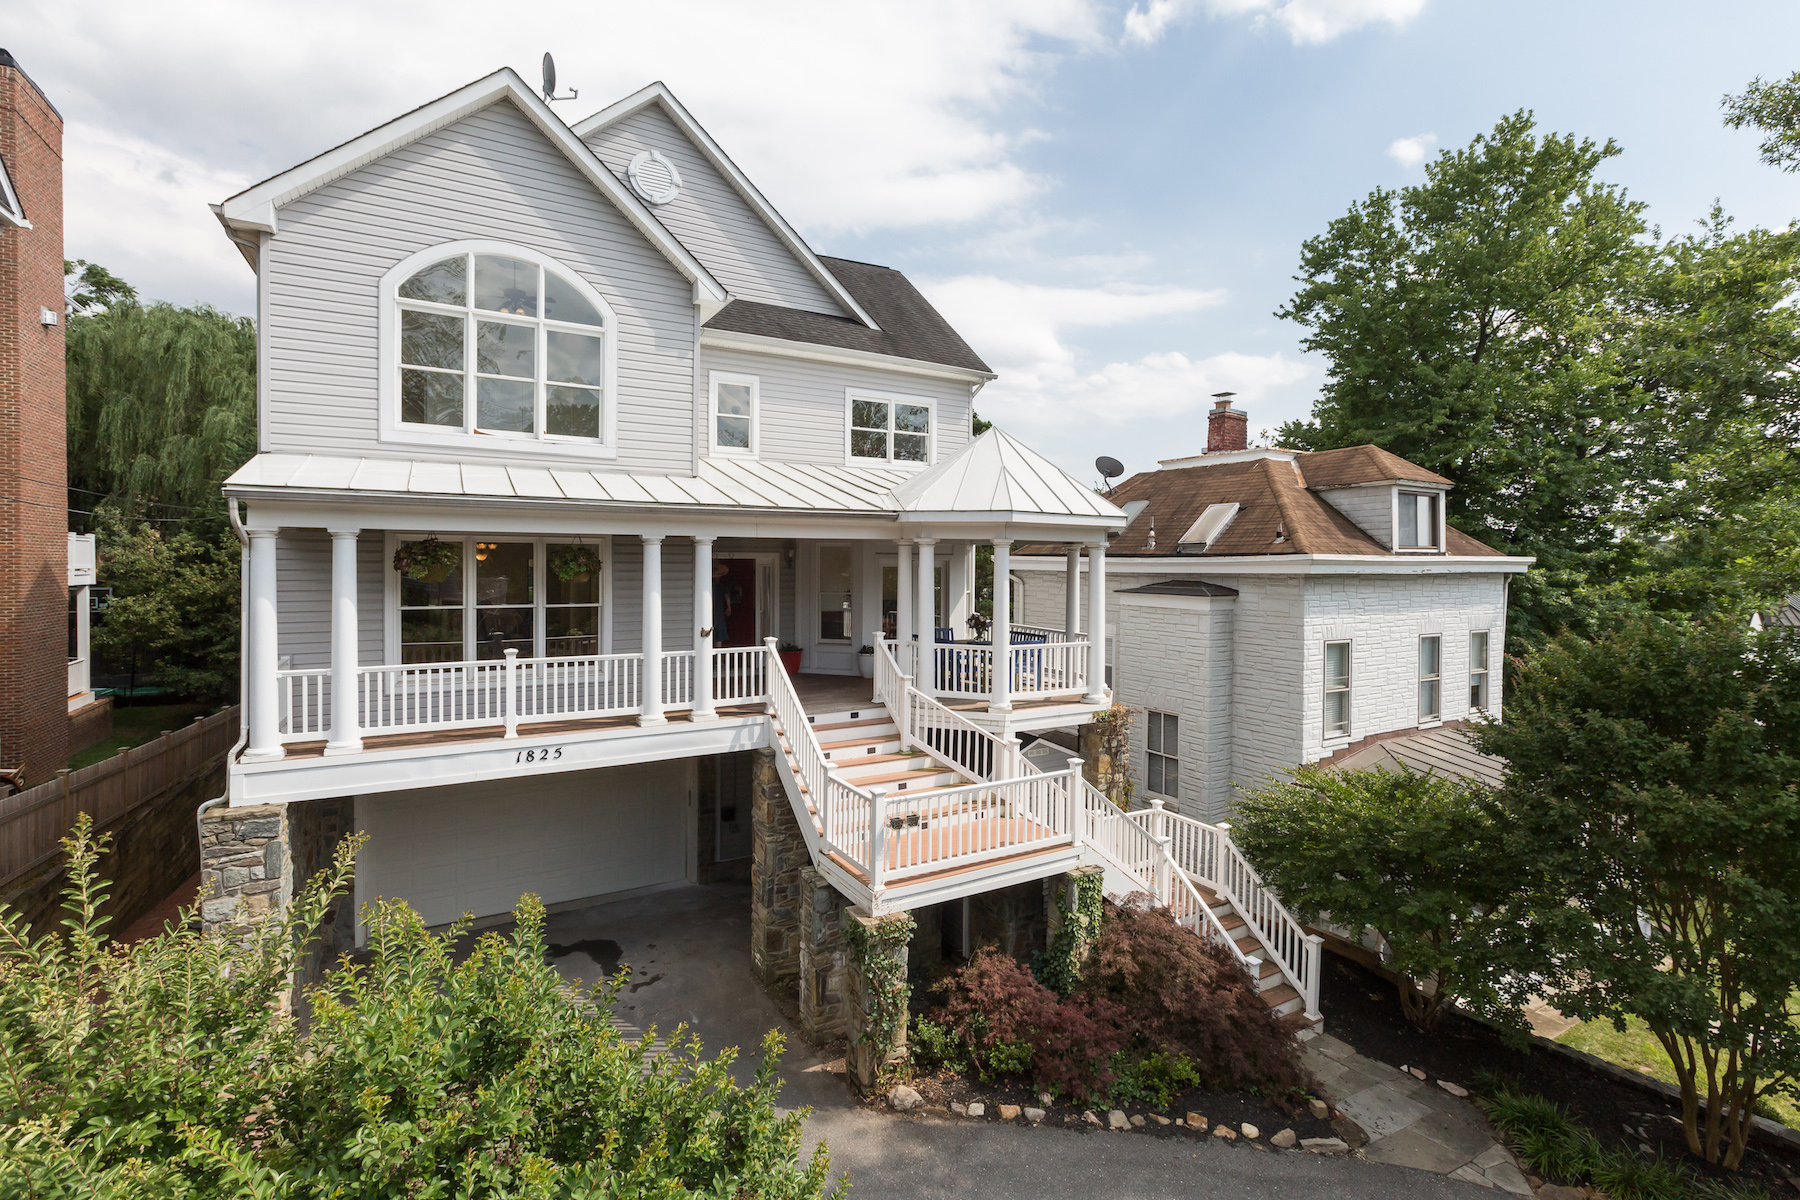 Single Family Home for Sale at Berkley 1825 47th Place Nw Washington, District Of Columbia 20007 United States